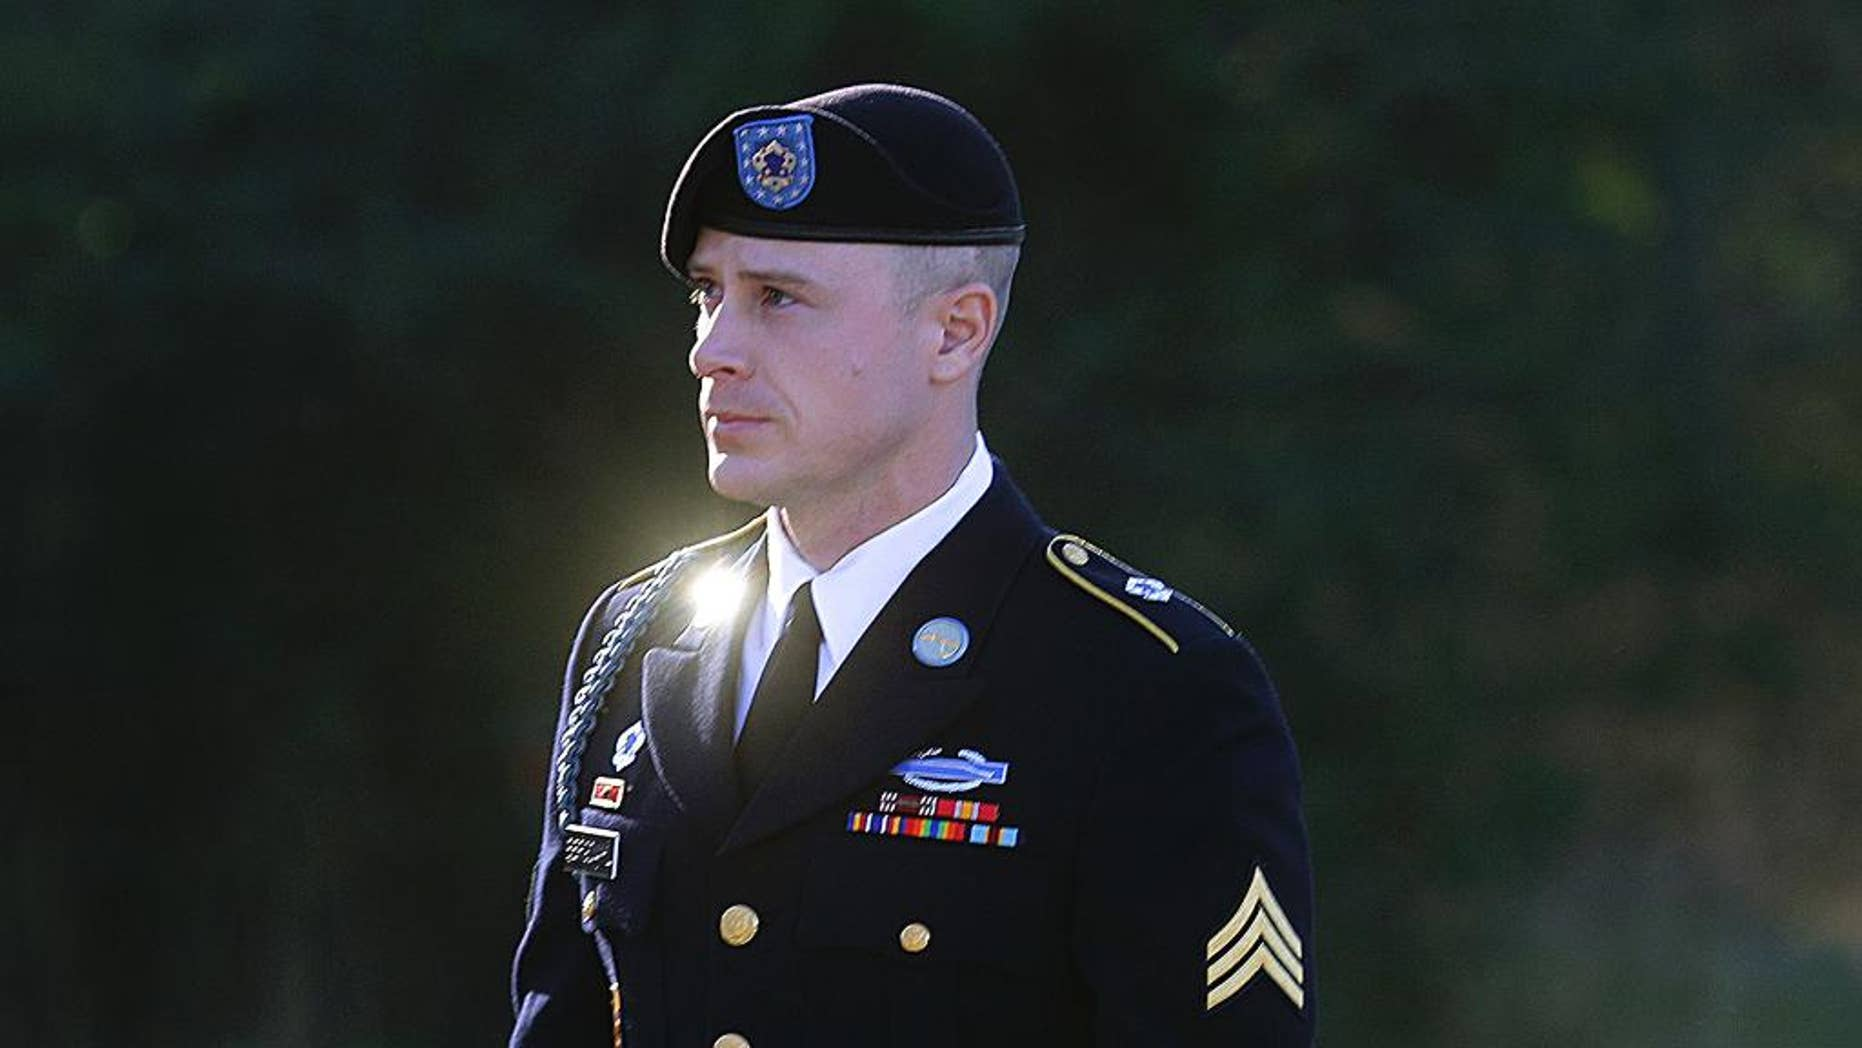 FILE - In this Jan. 12, 2016, file photo, Army Sgt. Bowe Bergdahl arrives for a pretrial hearing at Fort Bragg, N.C. A military judge could set a new timetable for the desertion case against Bergdahl at a pre-trial hearing nearly three years after the soldier's return from captivity. The judge has already scratched three previous trial dates amid delays over the exchange of classified information between prosecutors and defense lawyers. That process is expected to be a focus of a hearing on Friday, May 5, 2017, at Fort Bragg.  (AP Photo/Ted Richardson, File)